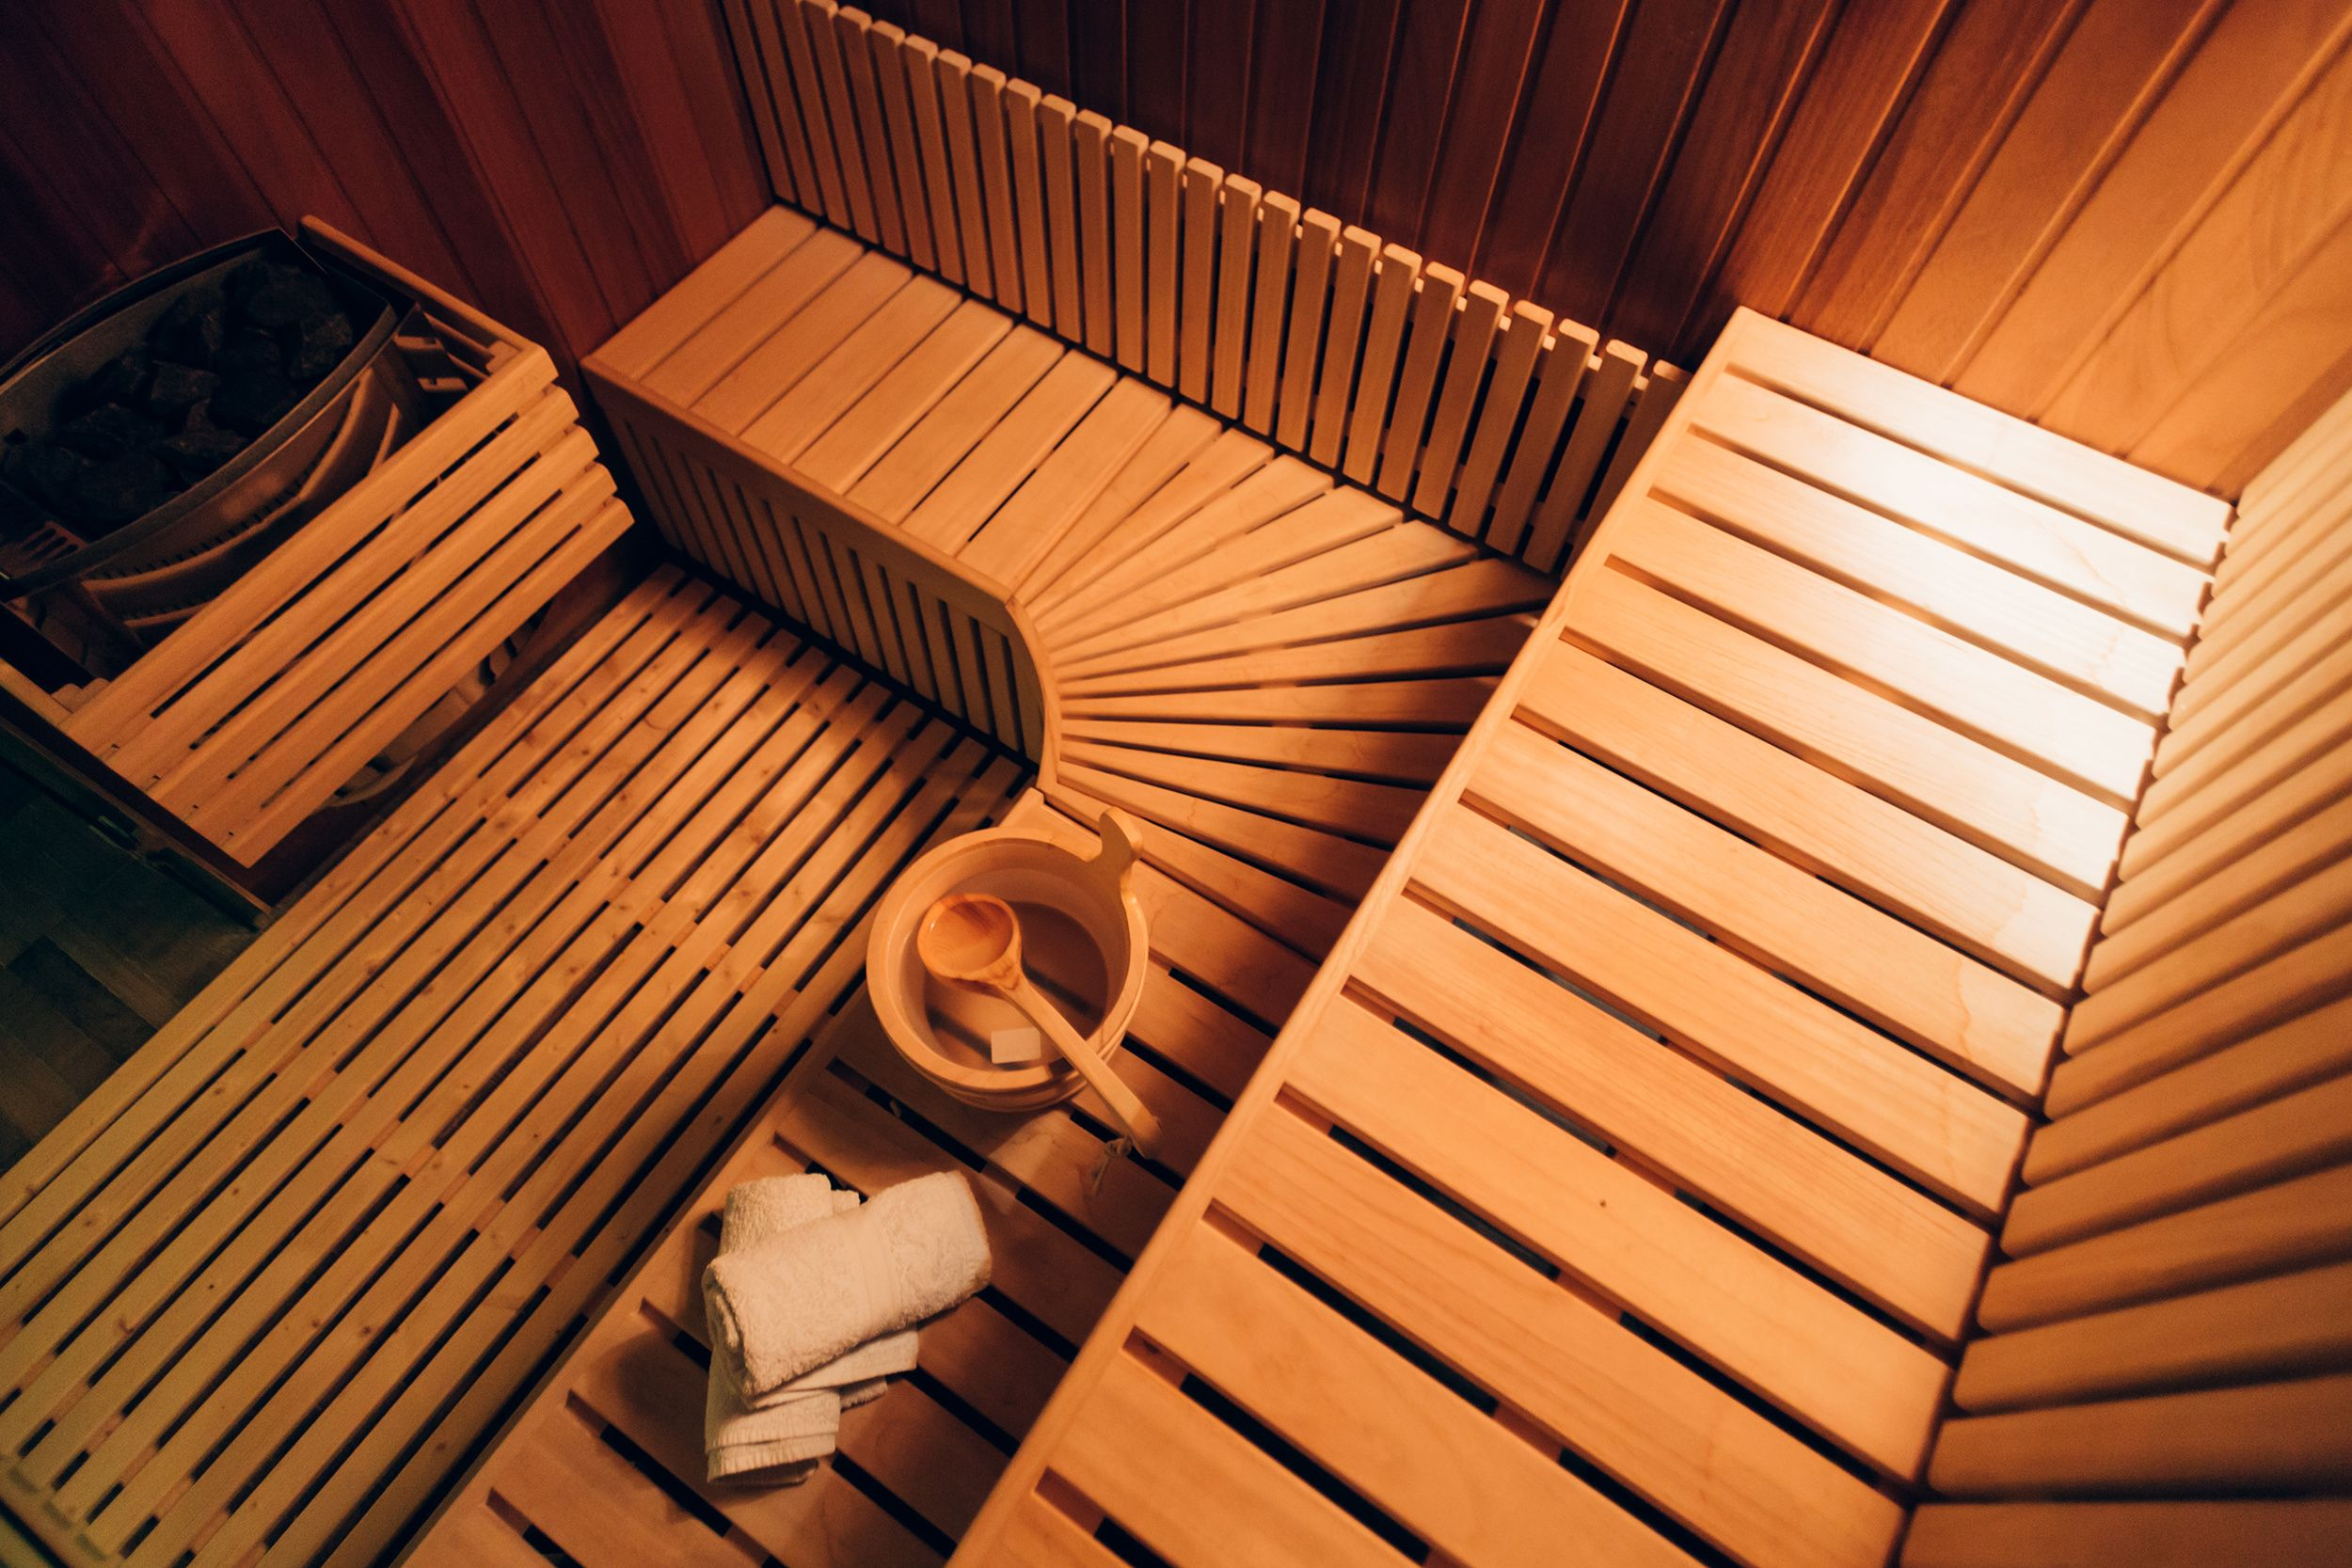 Interior of a tidy wooden sauna room